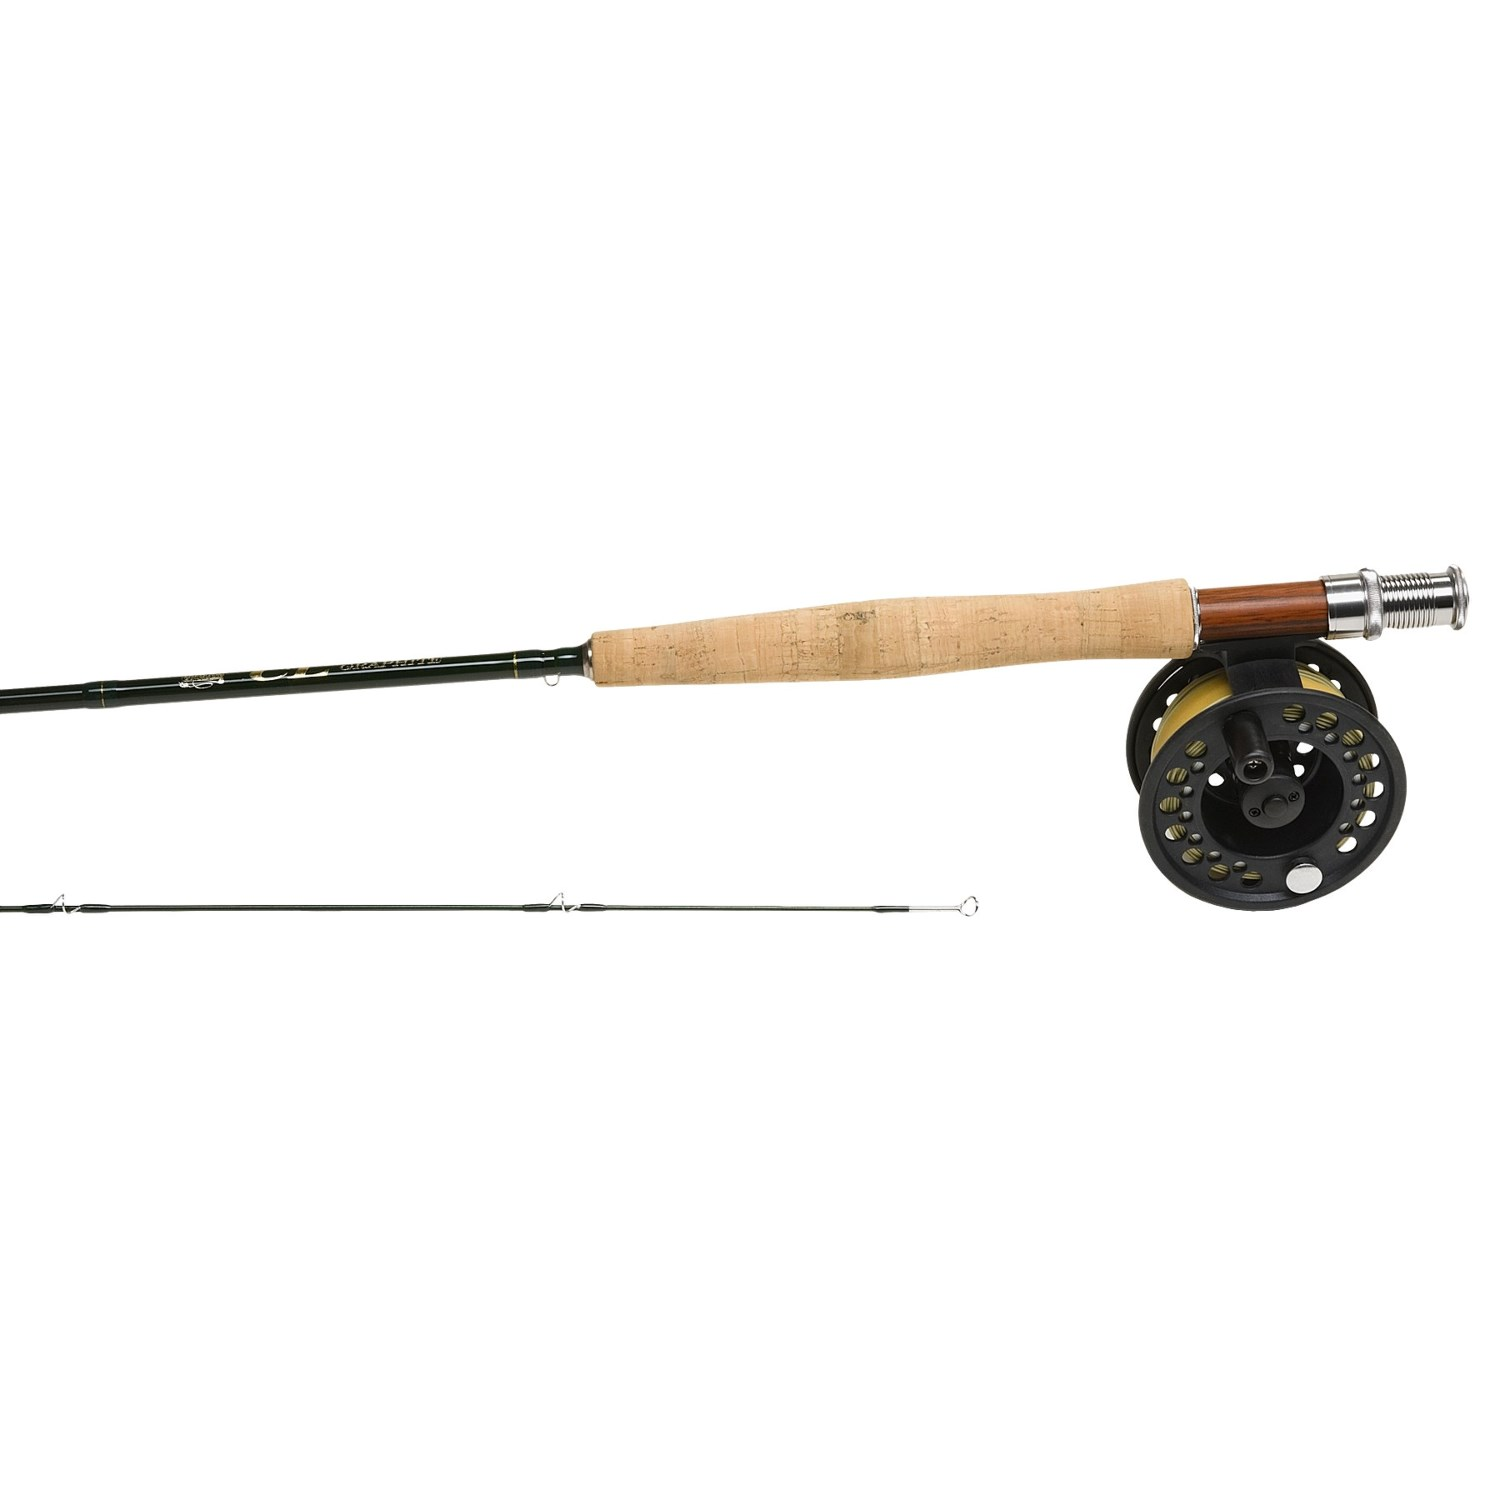 Cortland cl trout fly fishing outfit 2 piece rod with for Trout fishing rod and reel